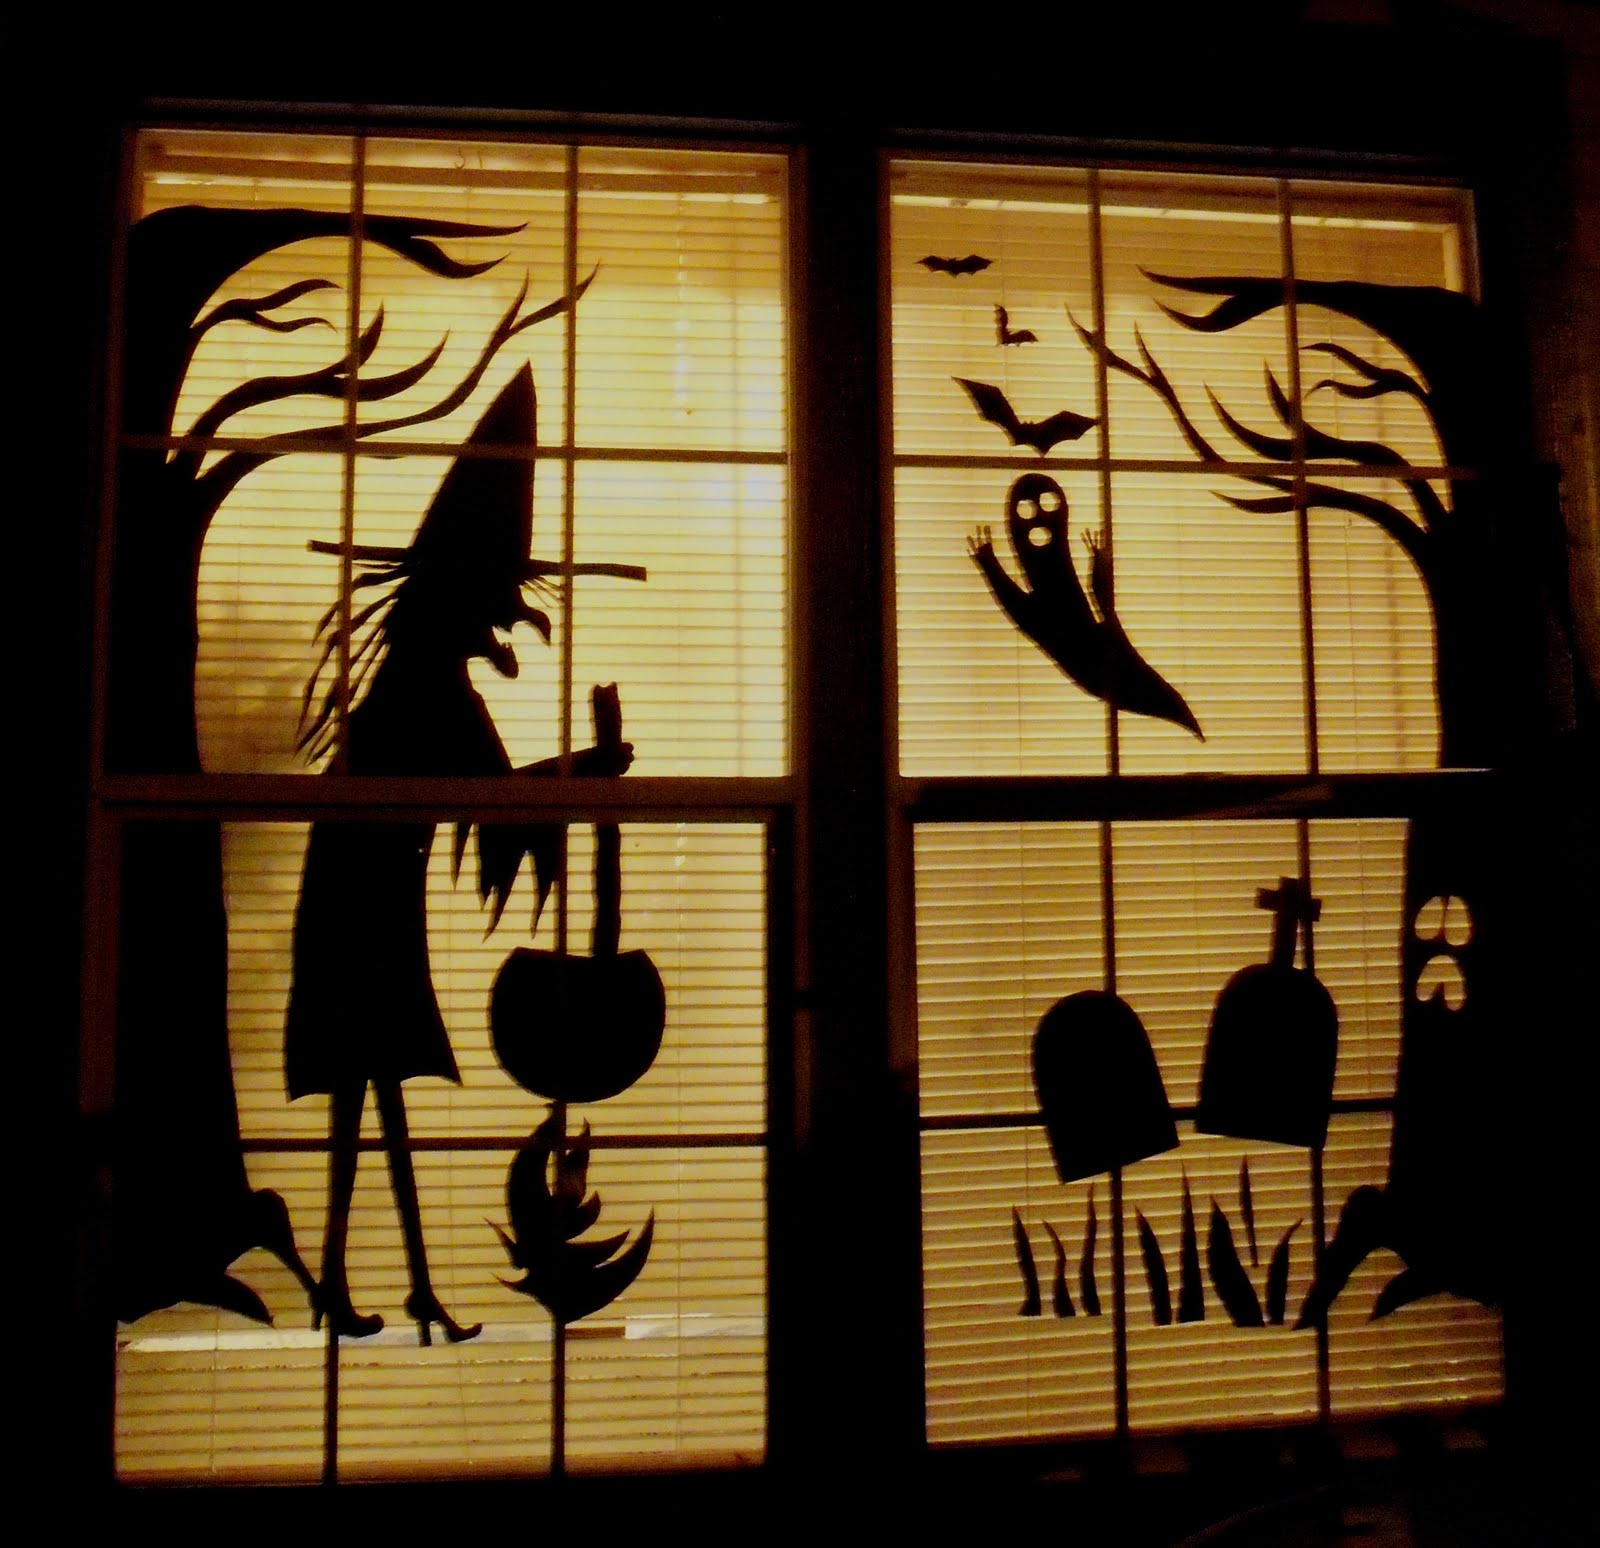 so cheap halloween fun decor with poster board - Cheap Halloween Decor